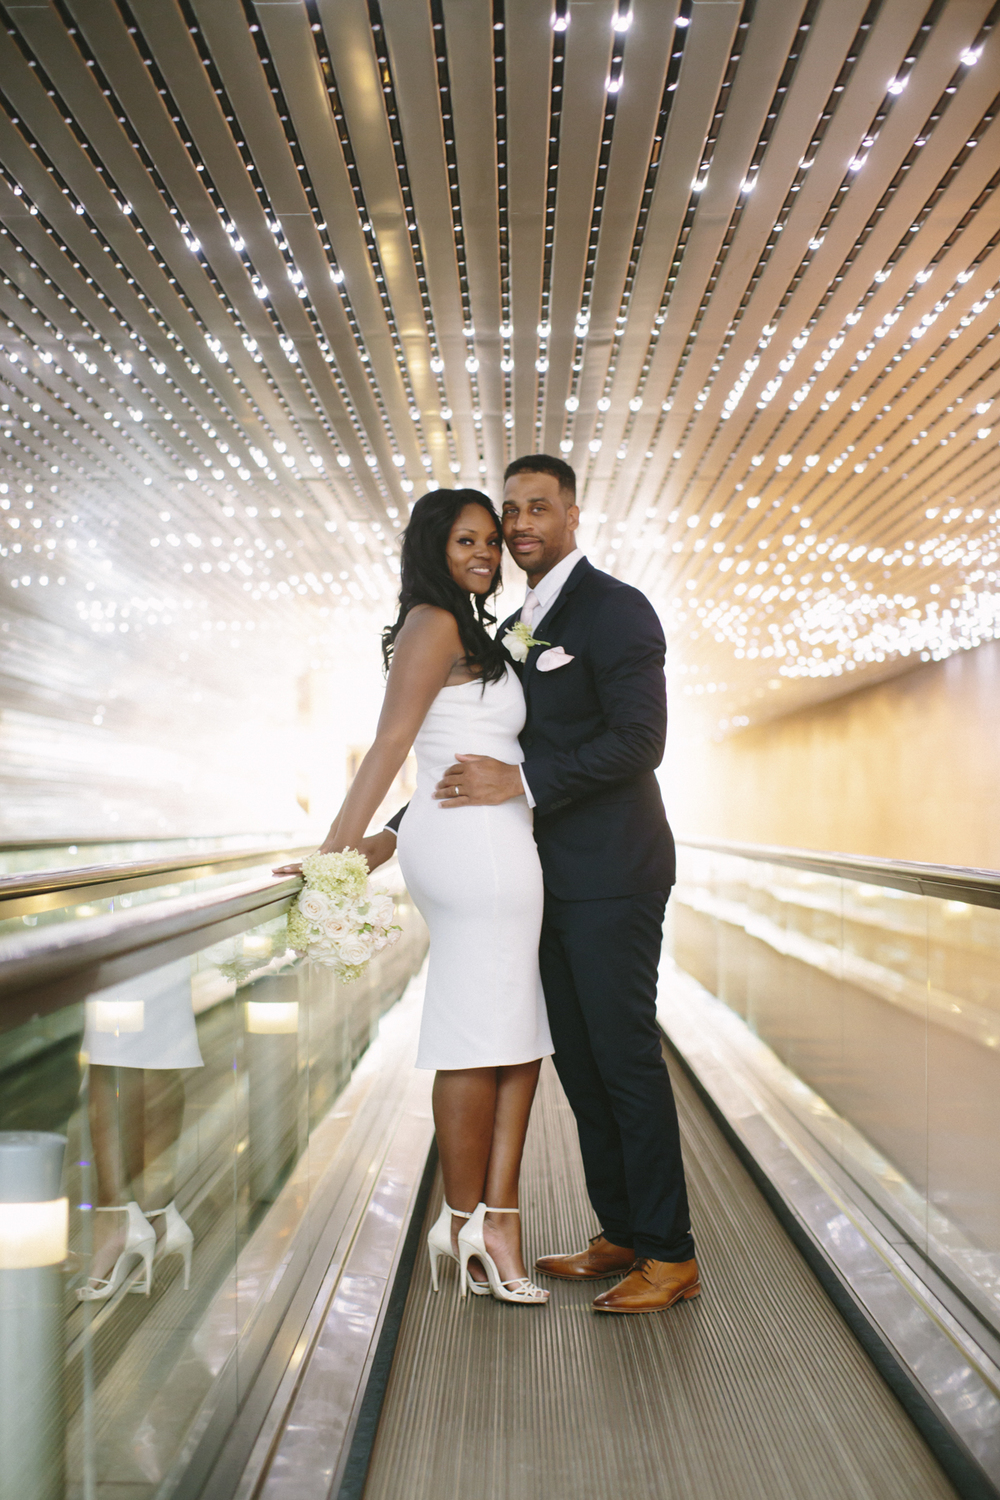 Vness-Photography_Washington-DC-Wedding-Photographer_Kennedy-Center-Wedding-53.JPG